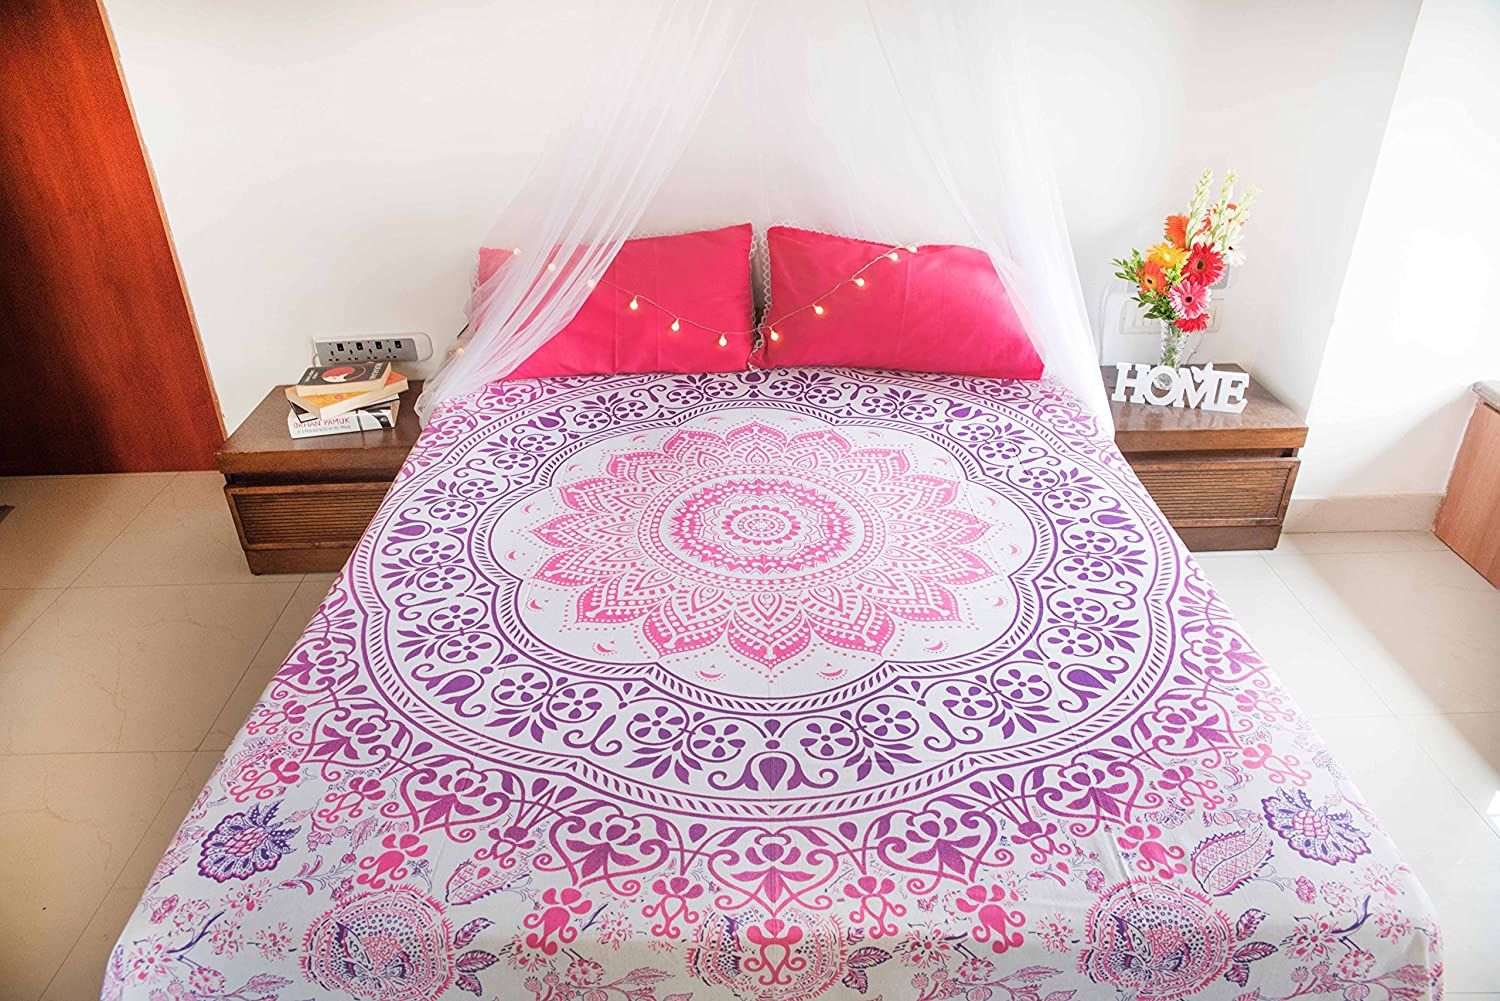 Champagne Mandala Tapestry Bedspread with Pillow Covers, Bohemian Ombre Tapestry Wall Hanging, Picnic Blanket or Hippie Beach Throw, Indian Bedding Set for Bedroom, Pink Purple Full Size Boho Spread